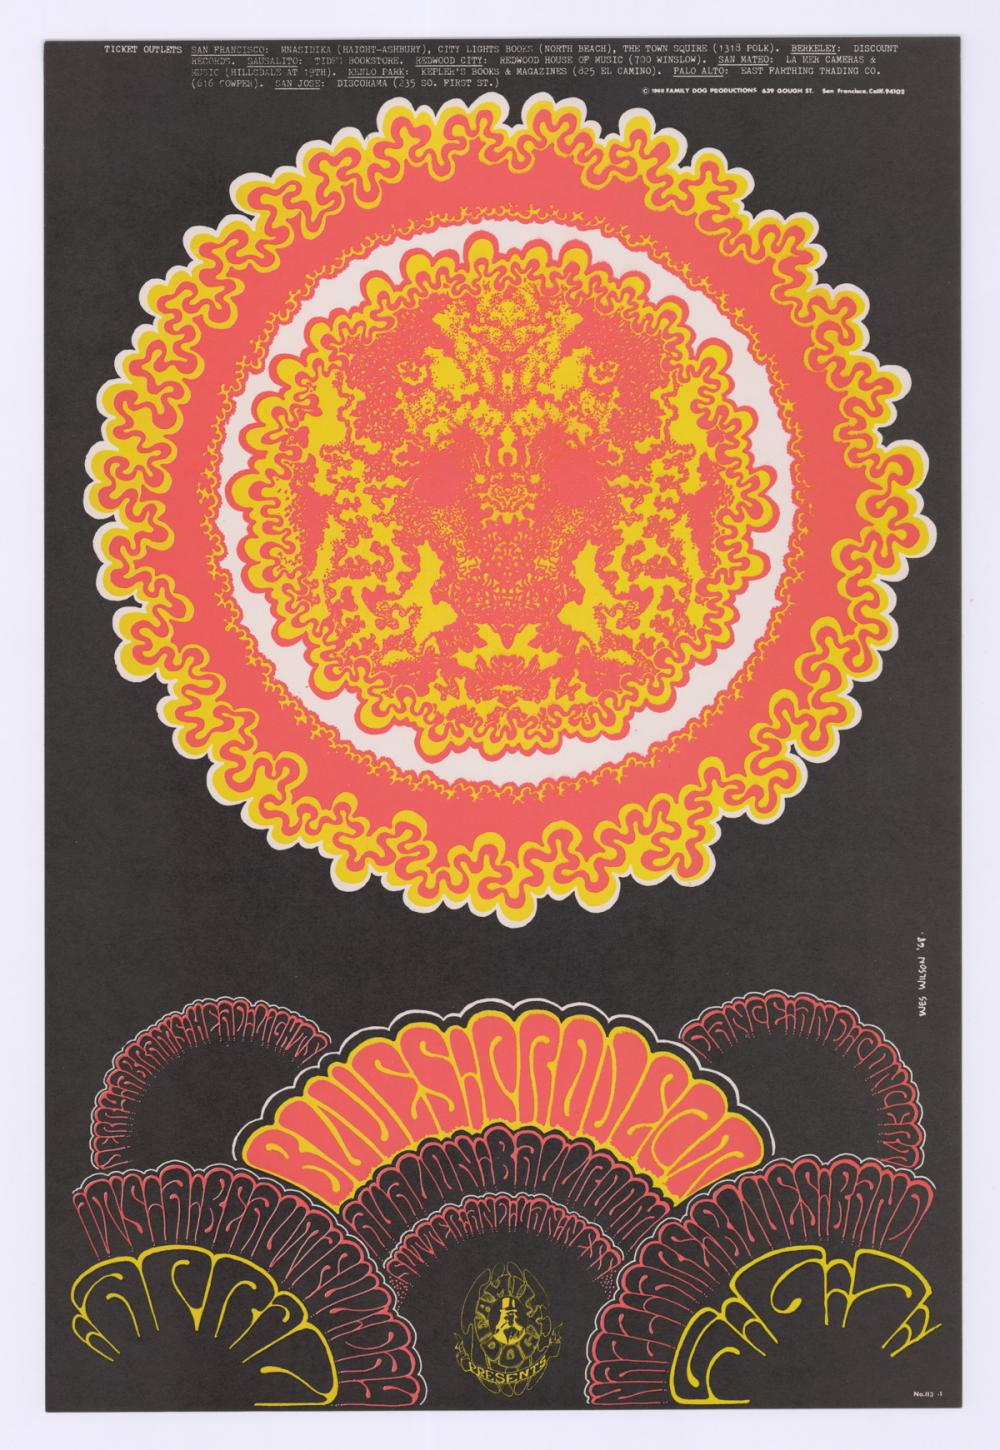 Lot 605: 1968 Family Dog Avalon Ballroom Poster FD-113-1